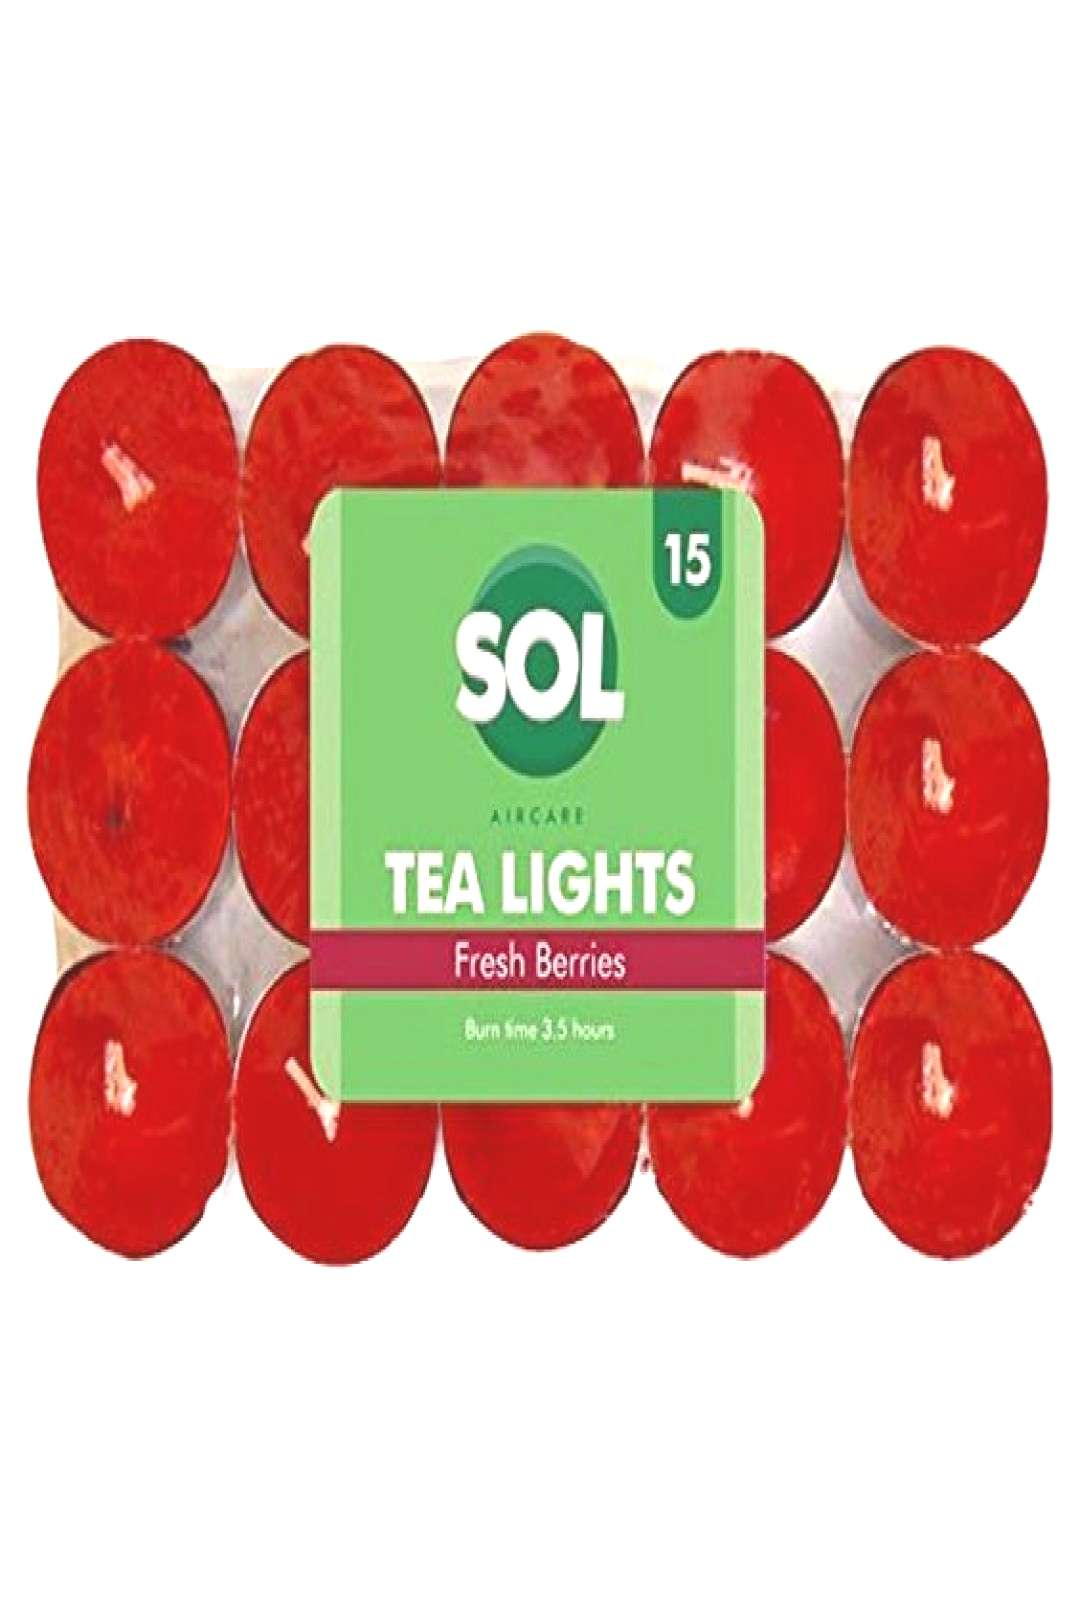 Sol Scented Tea Light Candles 15 Pack | Variety of Fragrances Fresh Berries Supplies Pencils-Writin